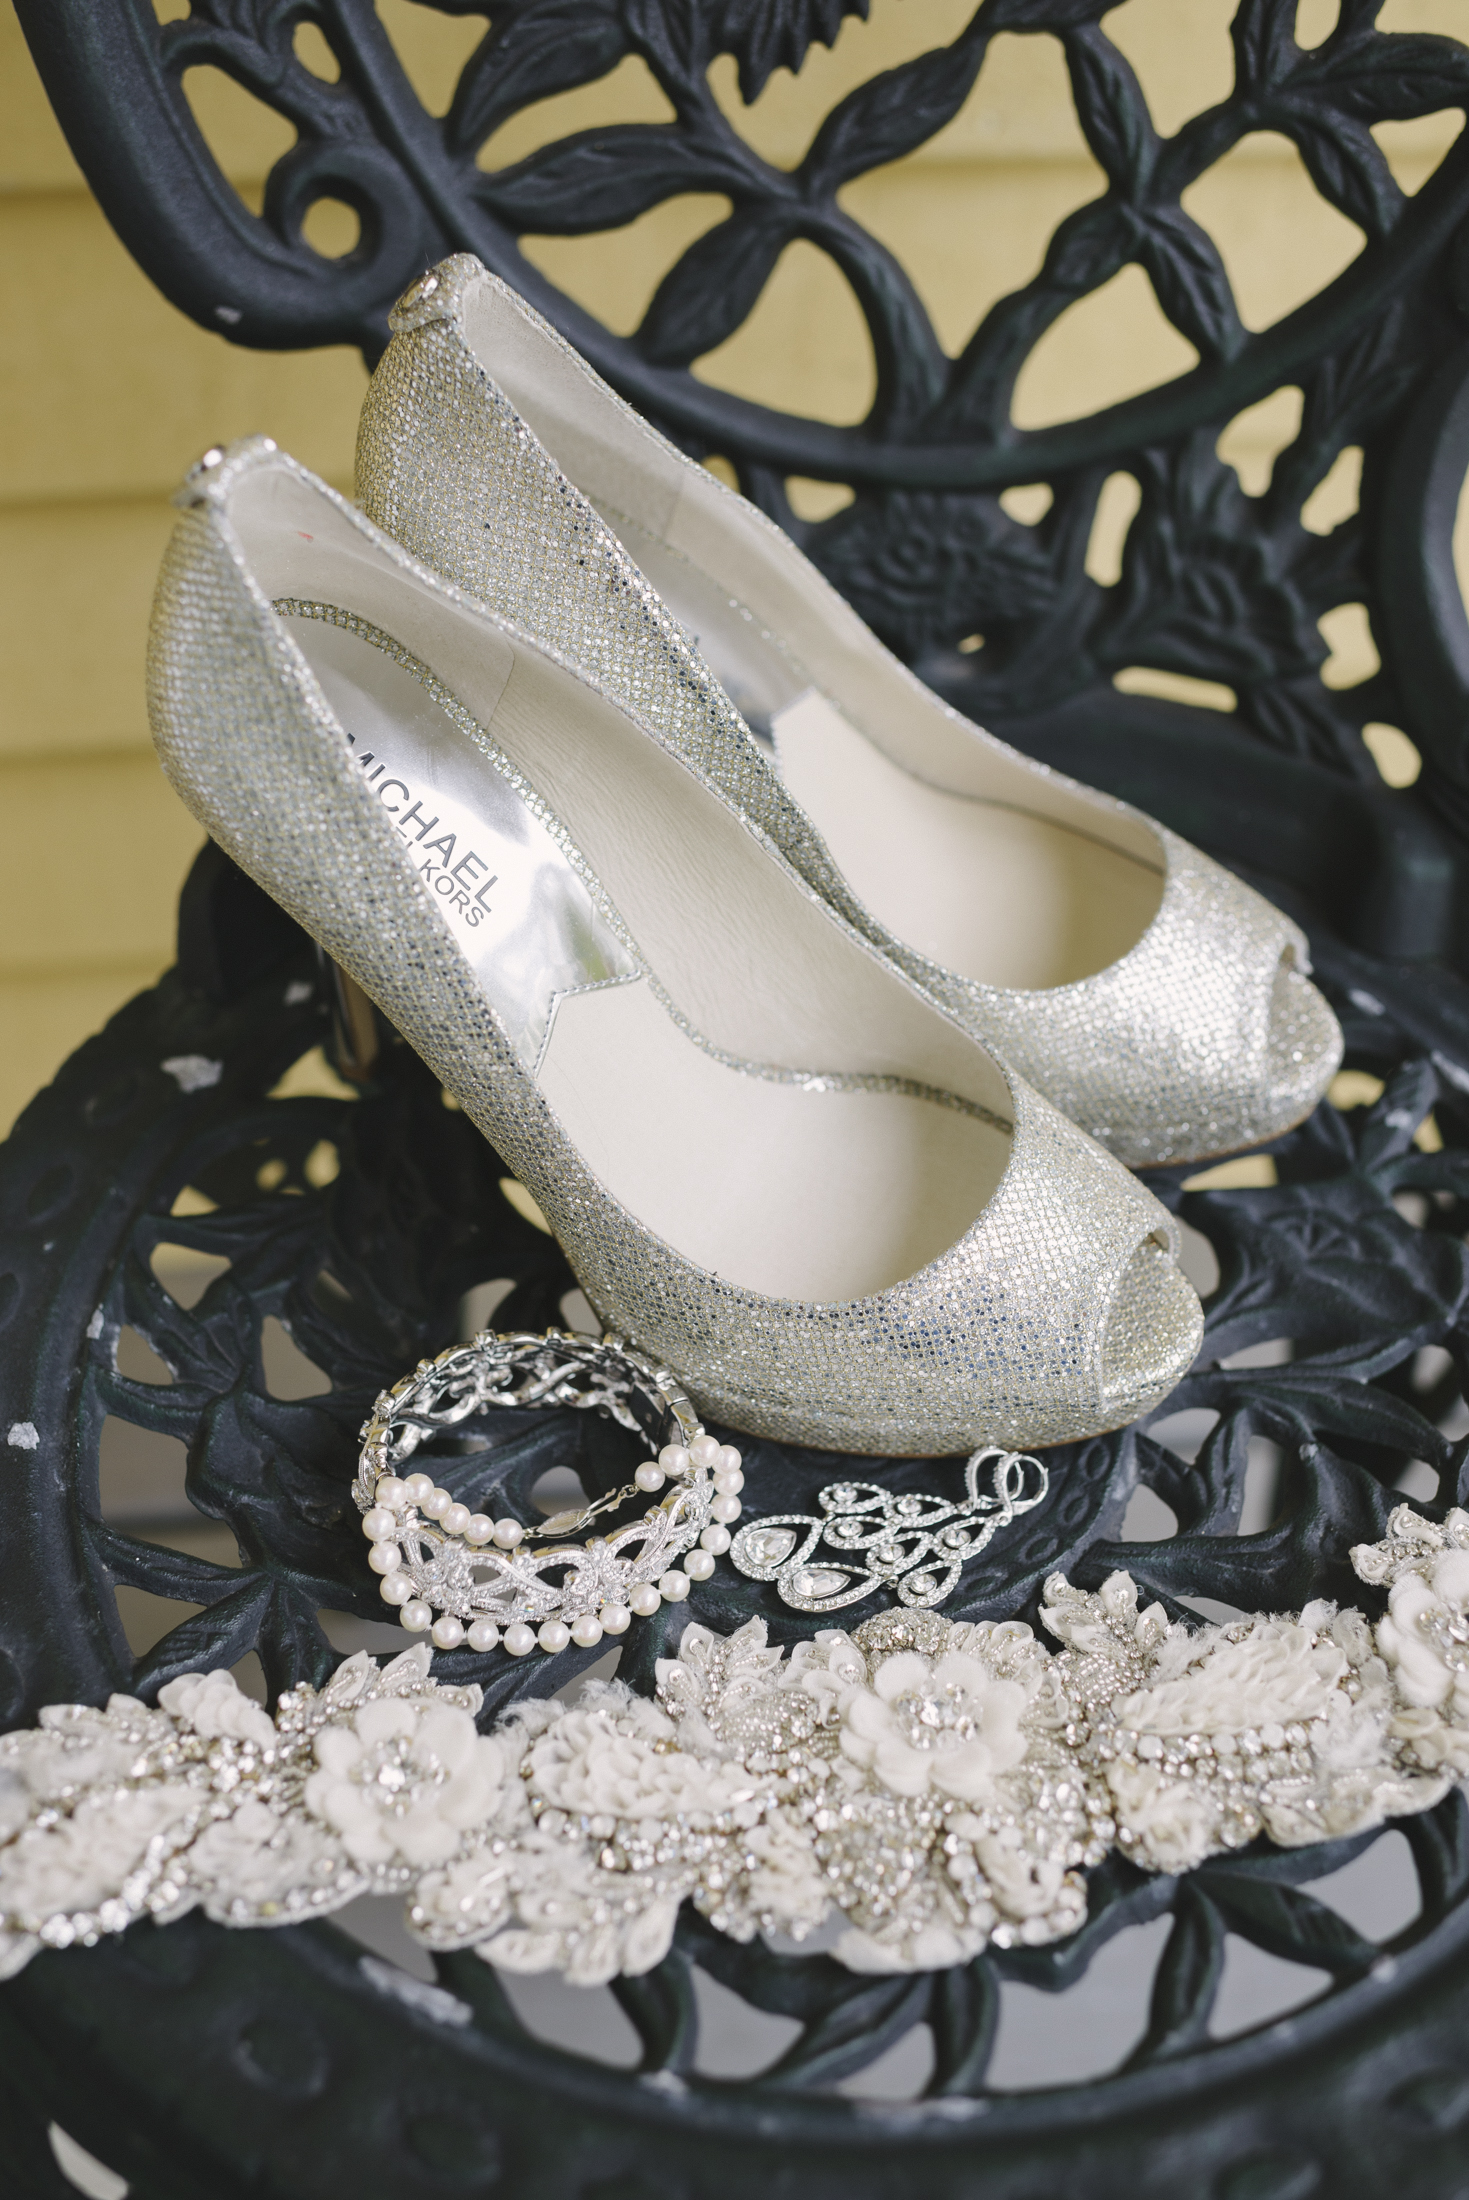 NH Wedding Photographer: Bedford Village Inn shoes and details